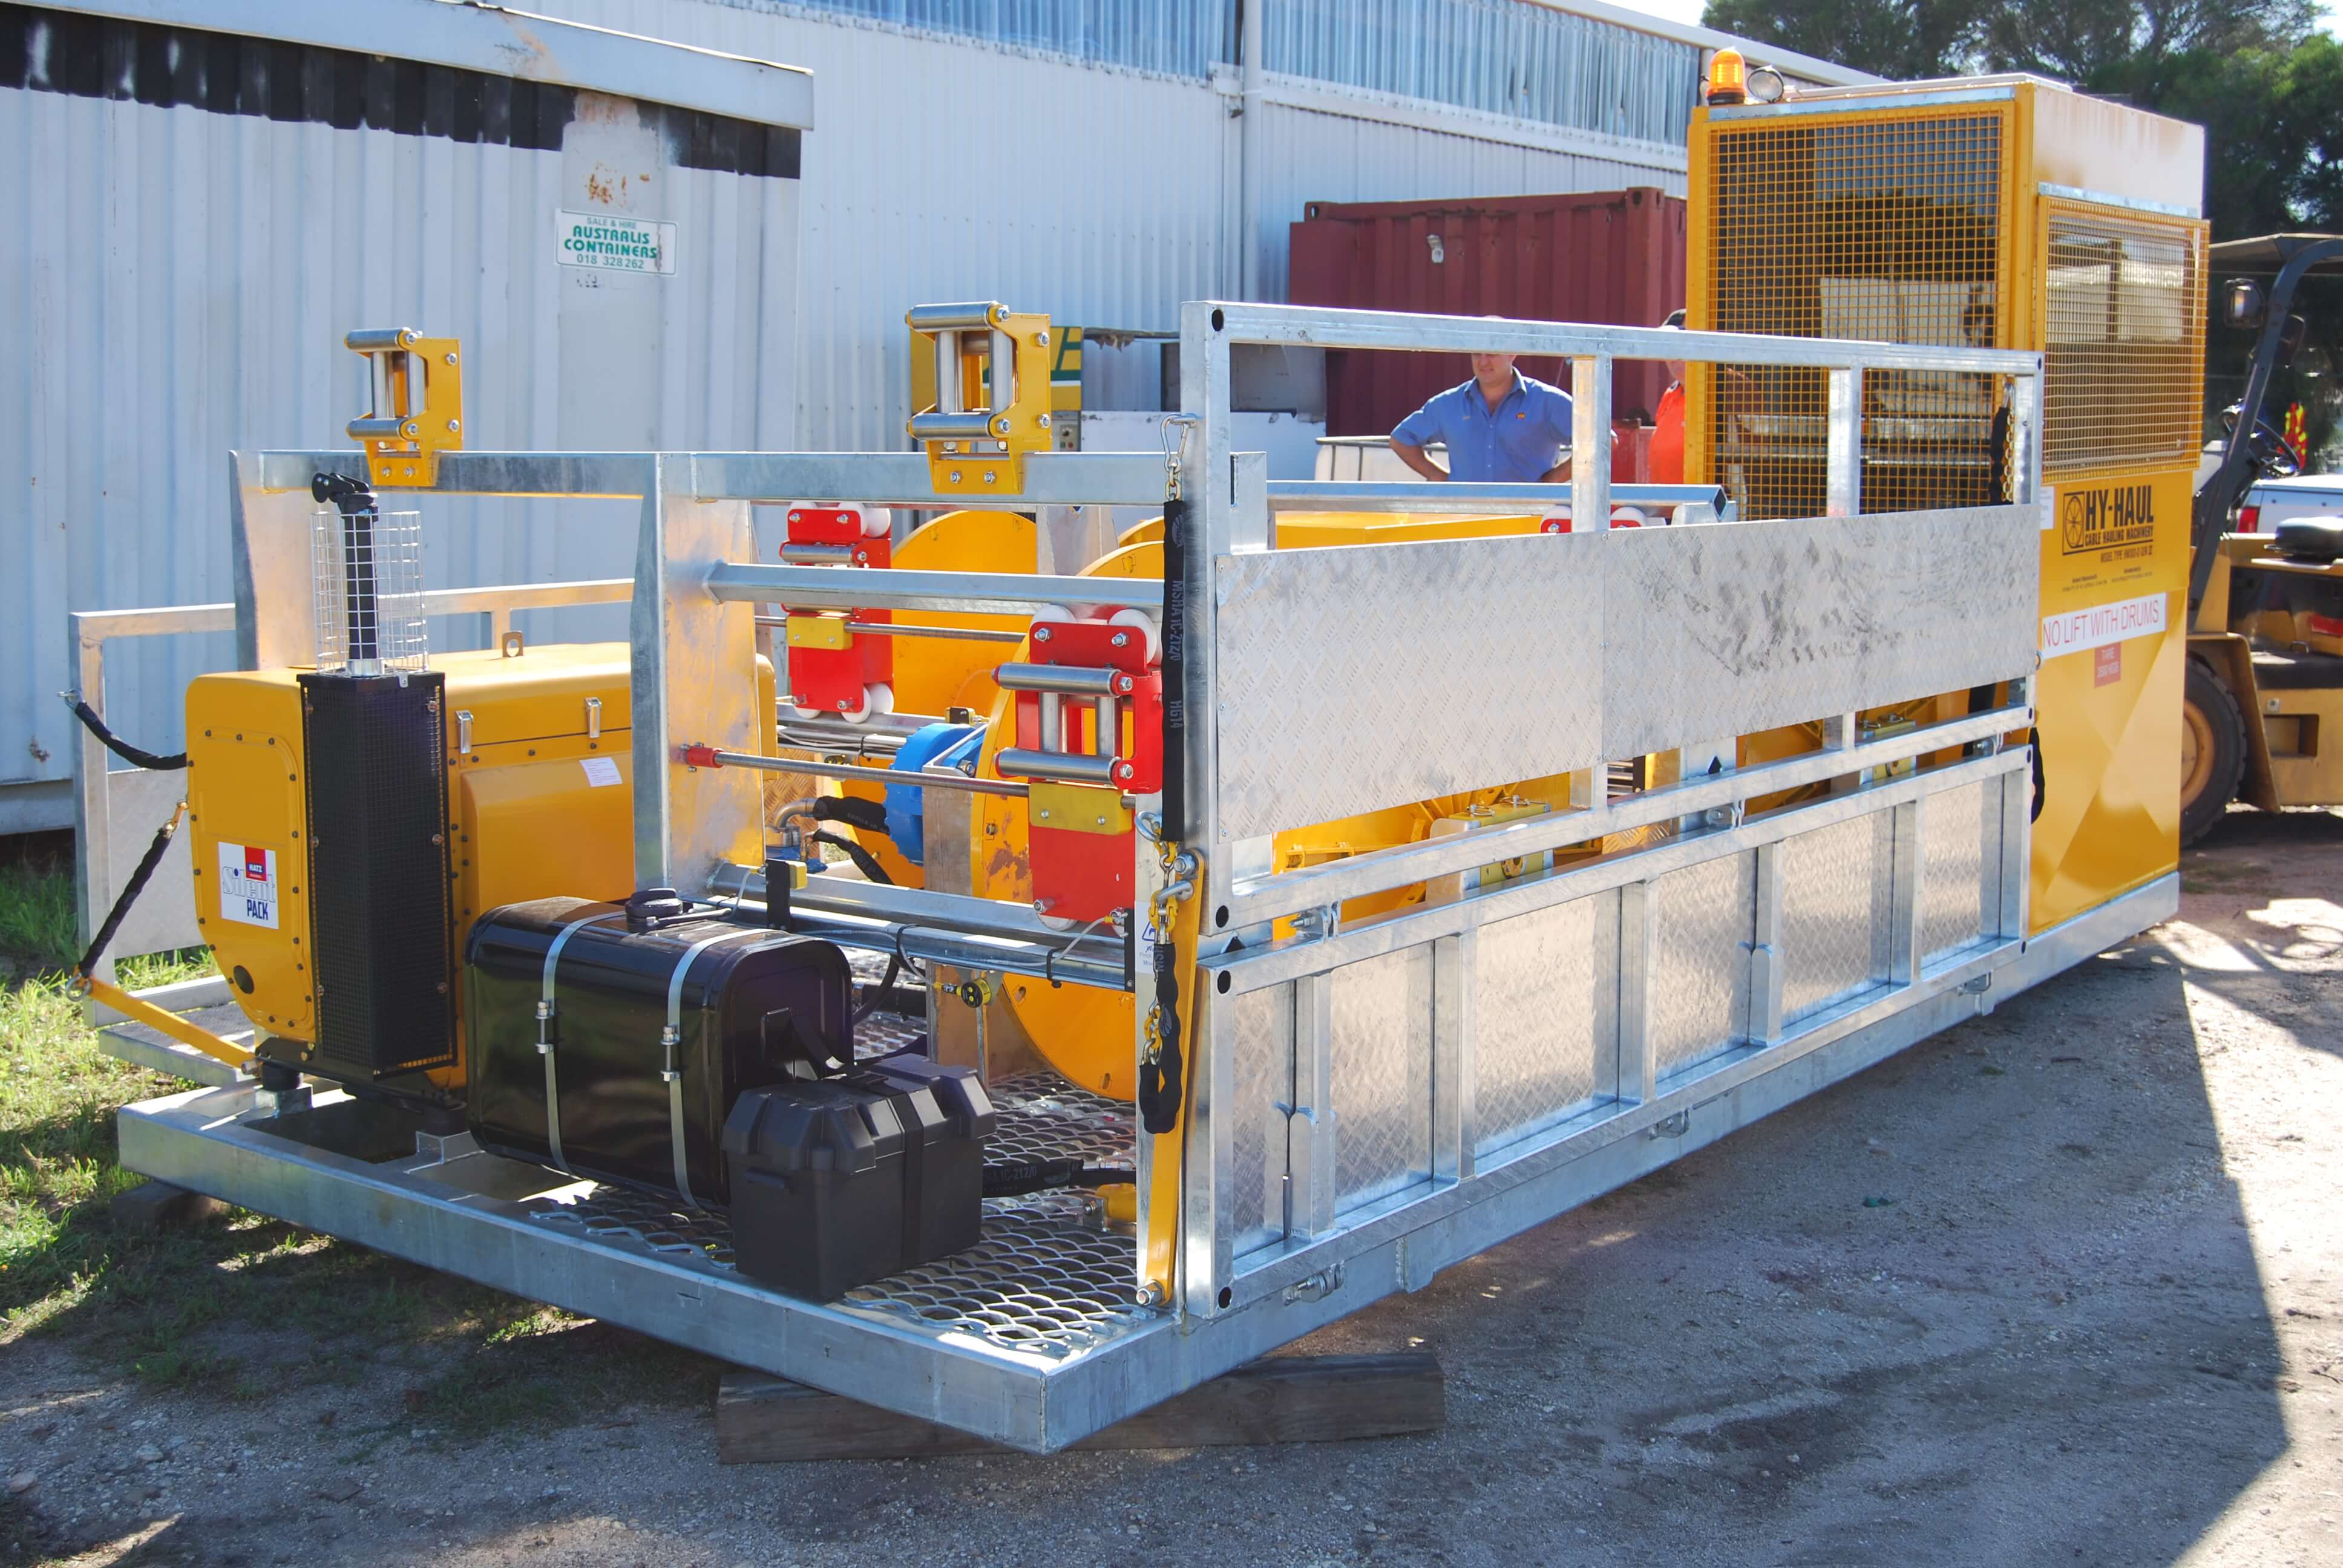 Hydeng Cable Hauling machine construction